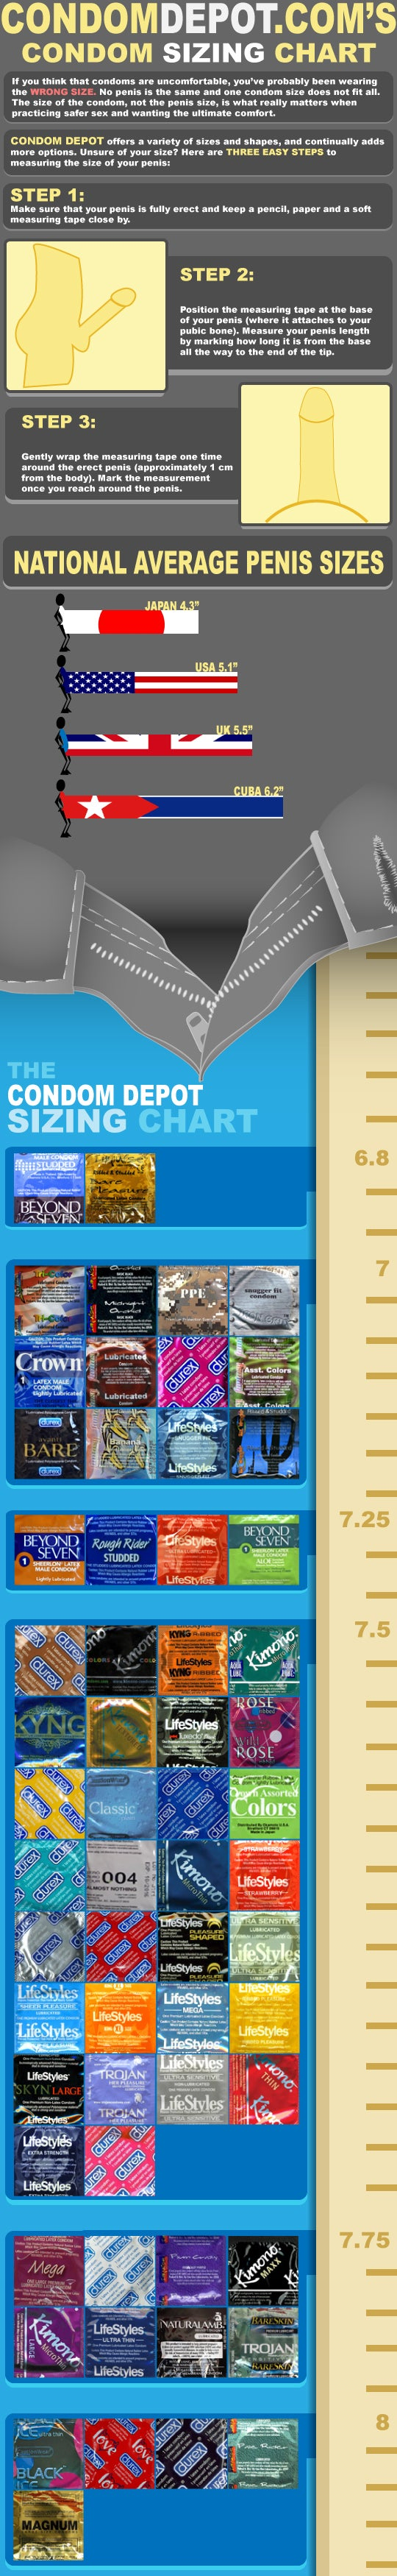 Use This Infographic to Help You Find the Right Sized Condom